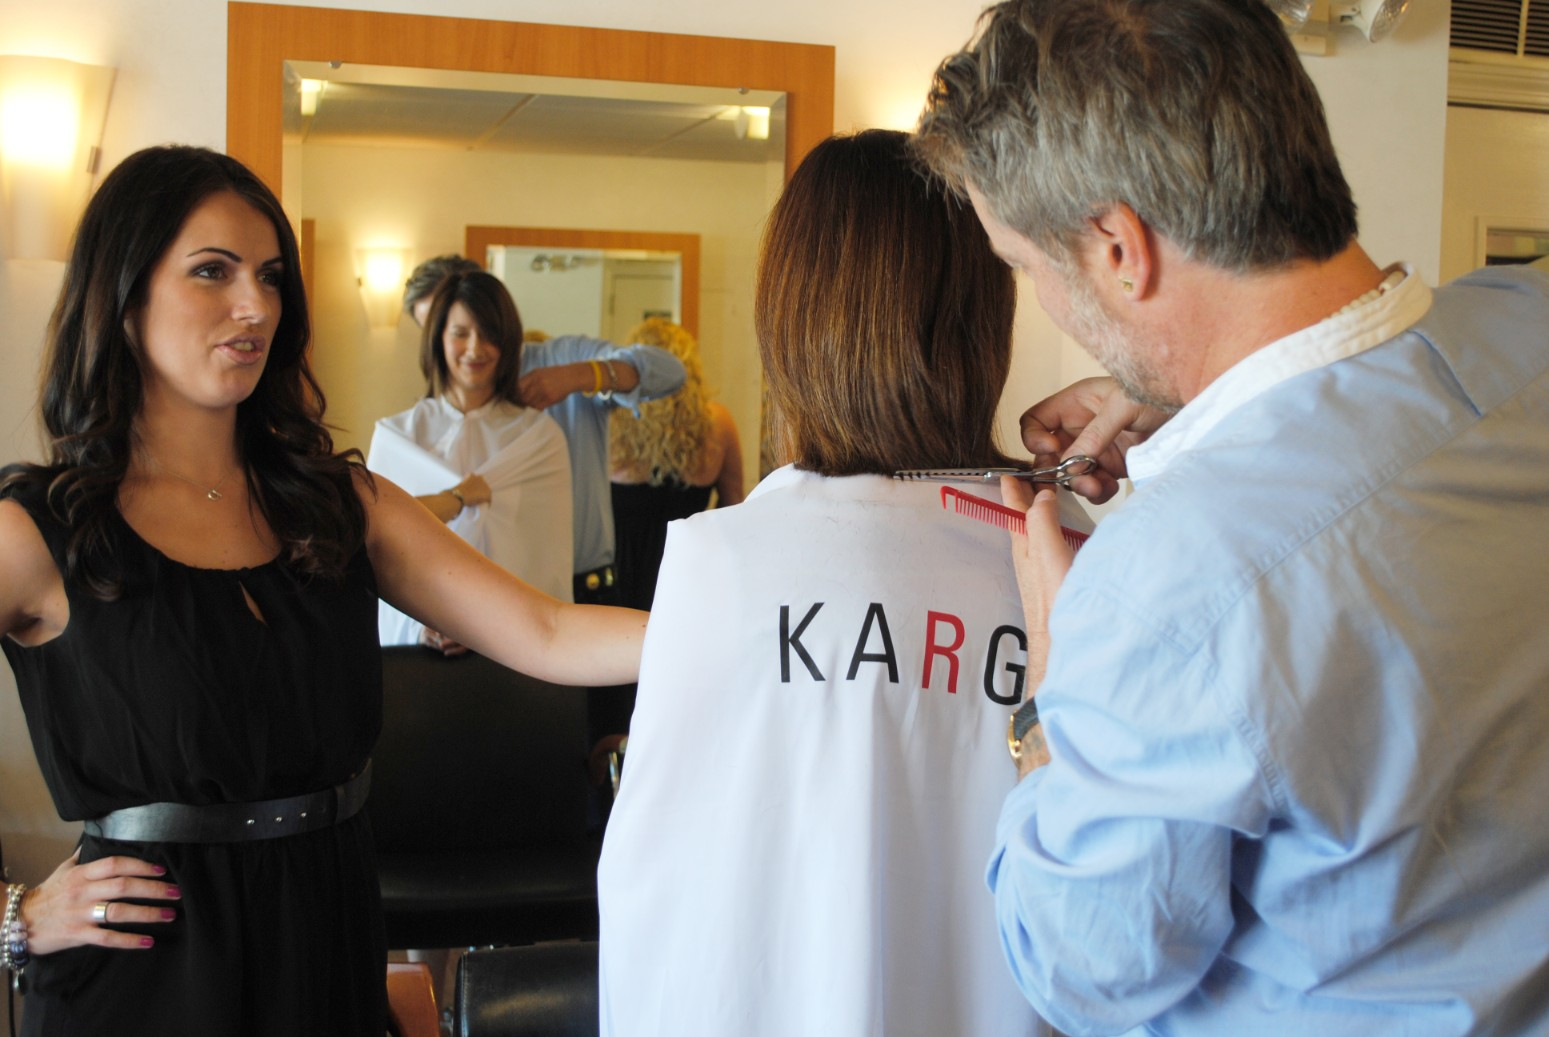 KARG DryHairCut Education at Interlocks - April 2011